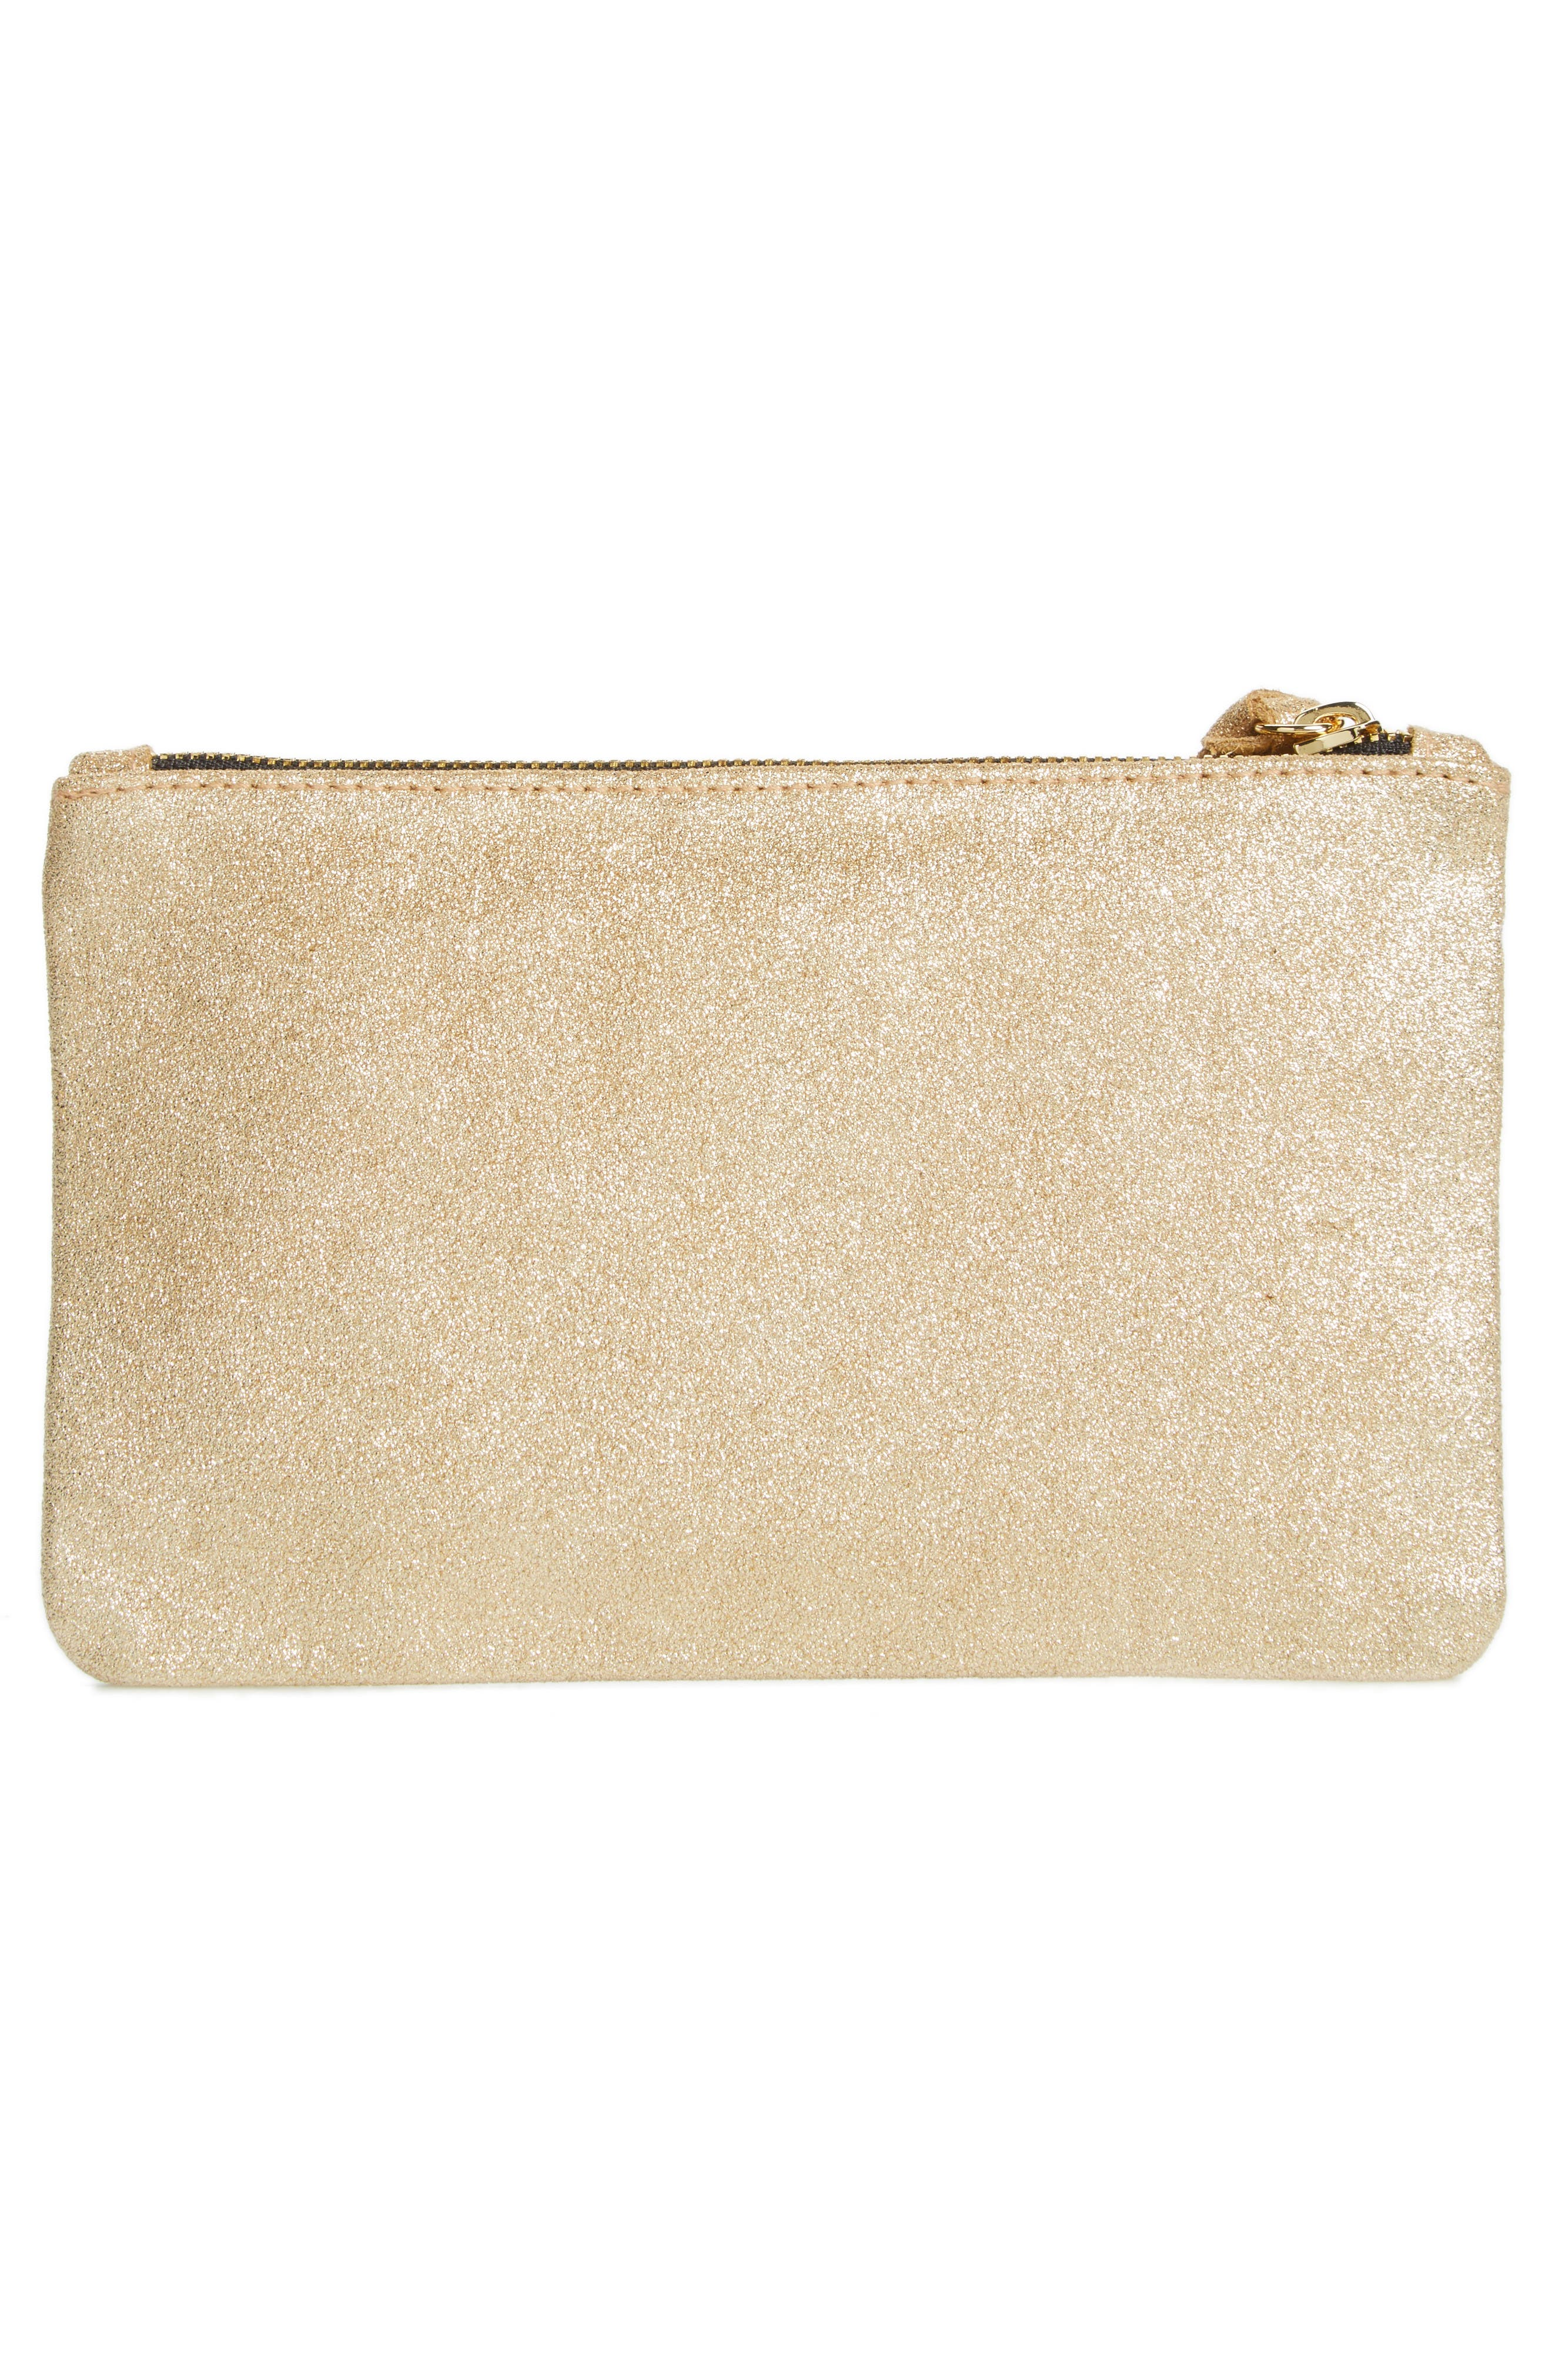 Shimmer Suede Wallet Clutch,                             Alternate thumbnail 3, color,                             710